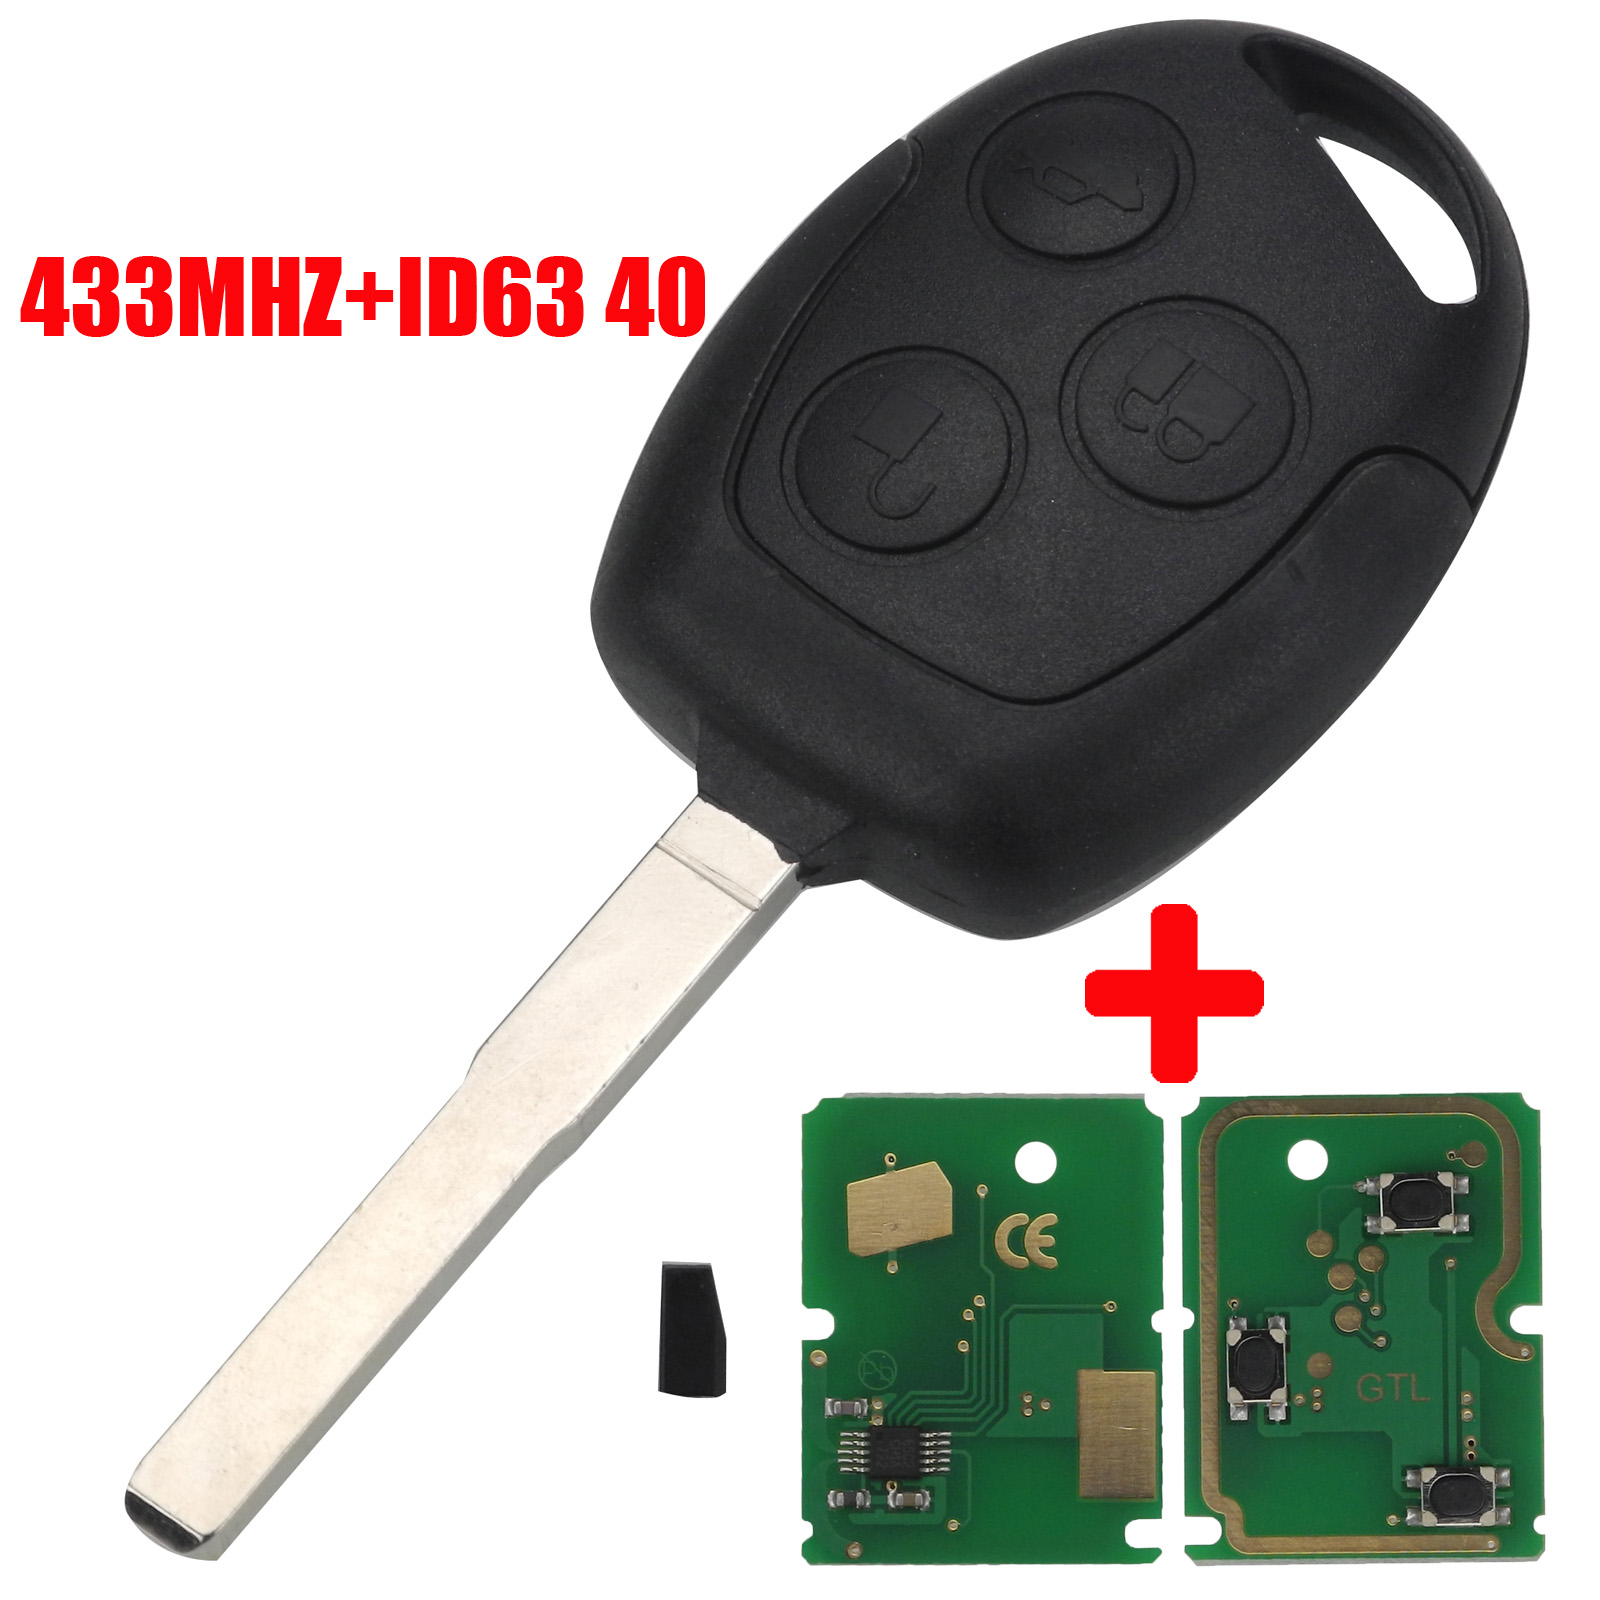 jingyuqin 3 Button 4D63 Chip 315/433Mhz Car <font><b>Remote</b></font> <font><b>Key</b></font> <font><b>For</b></font> <font><b>Ford</b></font> <font><b>Focus</b></font> Fiesta Fusion Mondeo Galaxy C-Max S-Max With HU101 Blade image